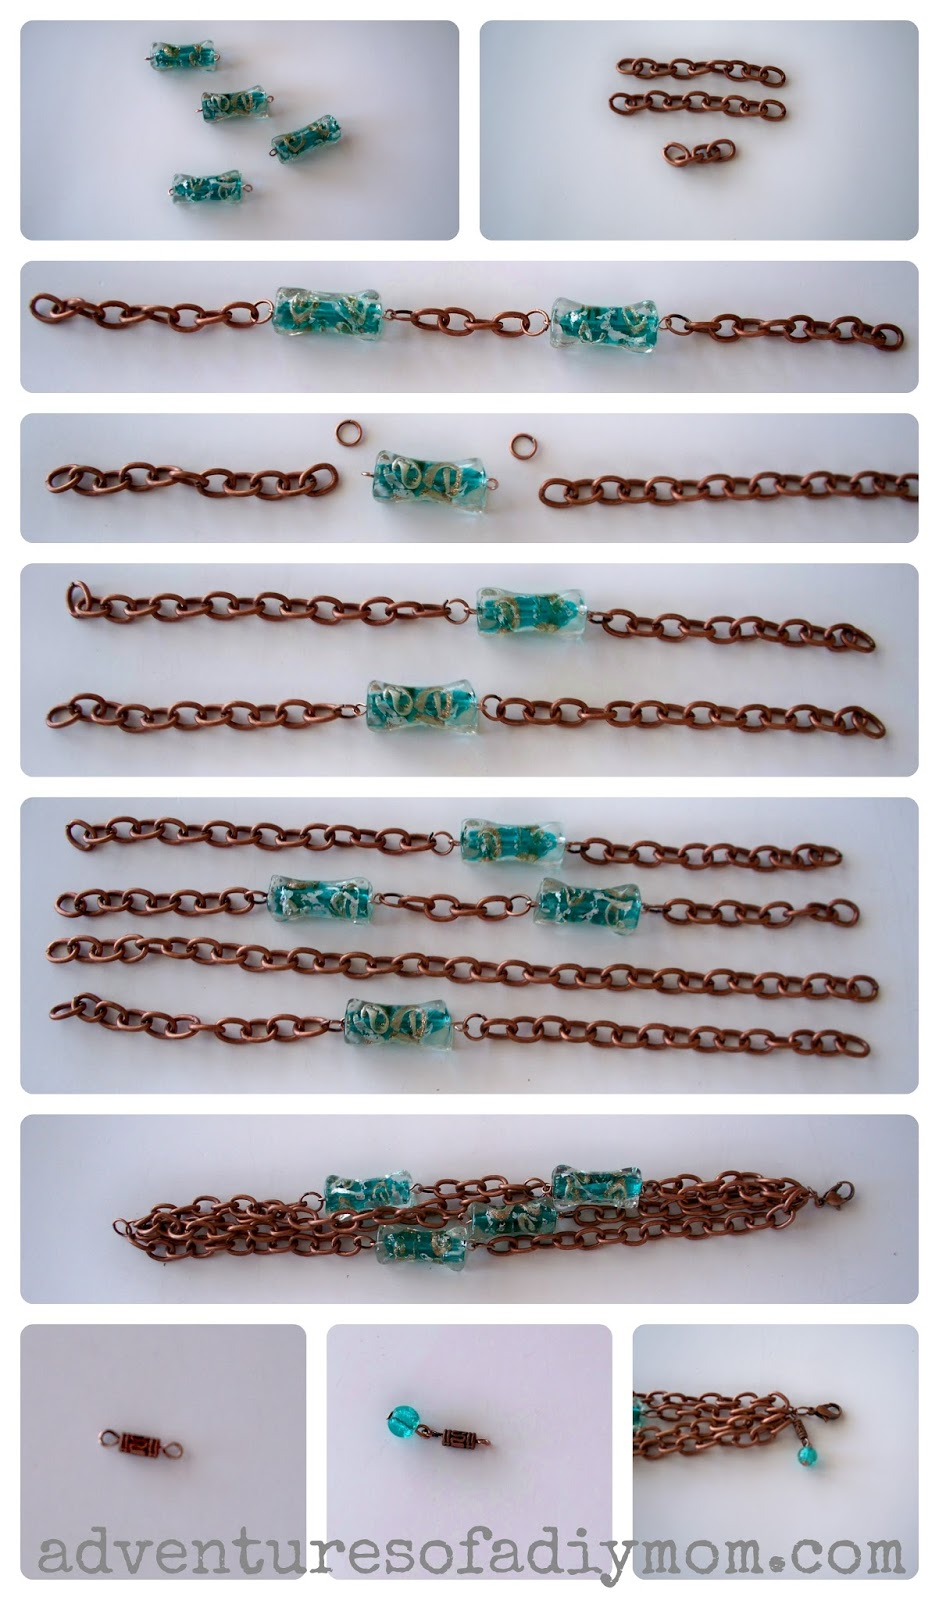 How to Make a Turquoise and Copper Bracelet